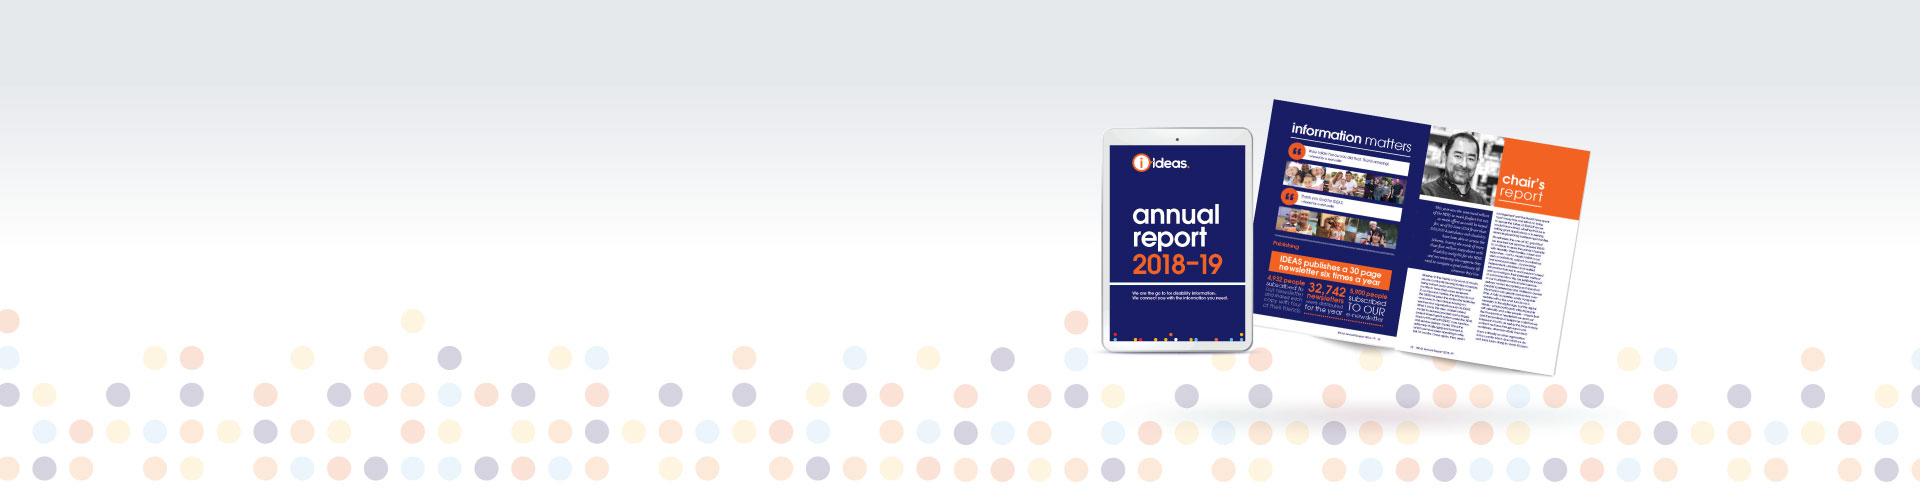 Graphic of the Annual Report cover